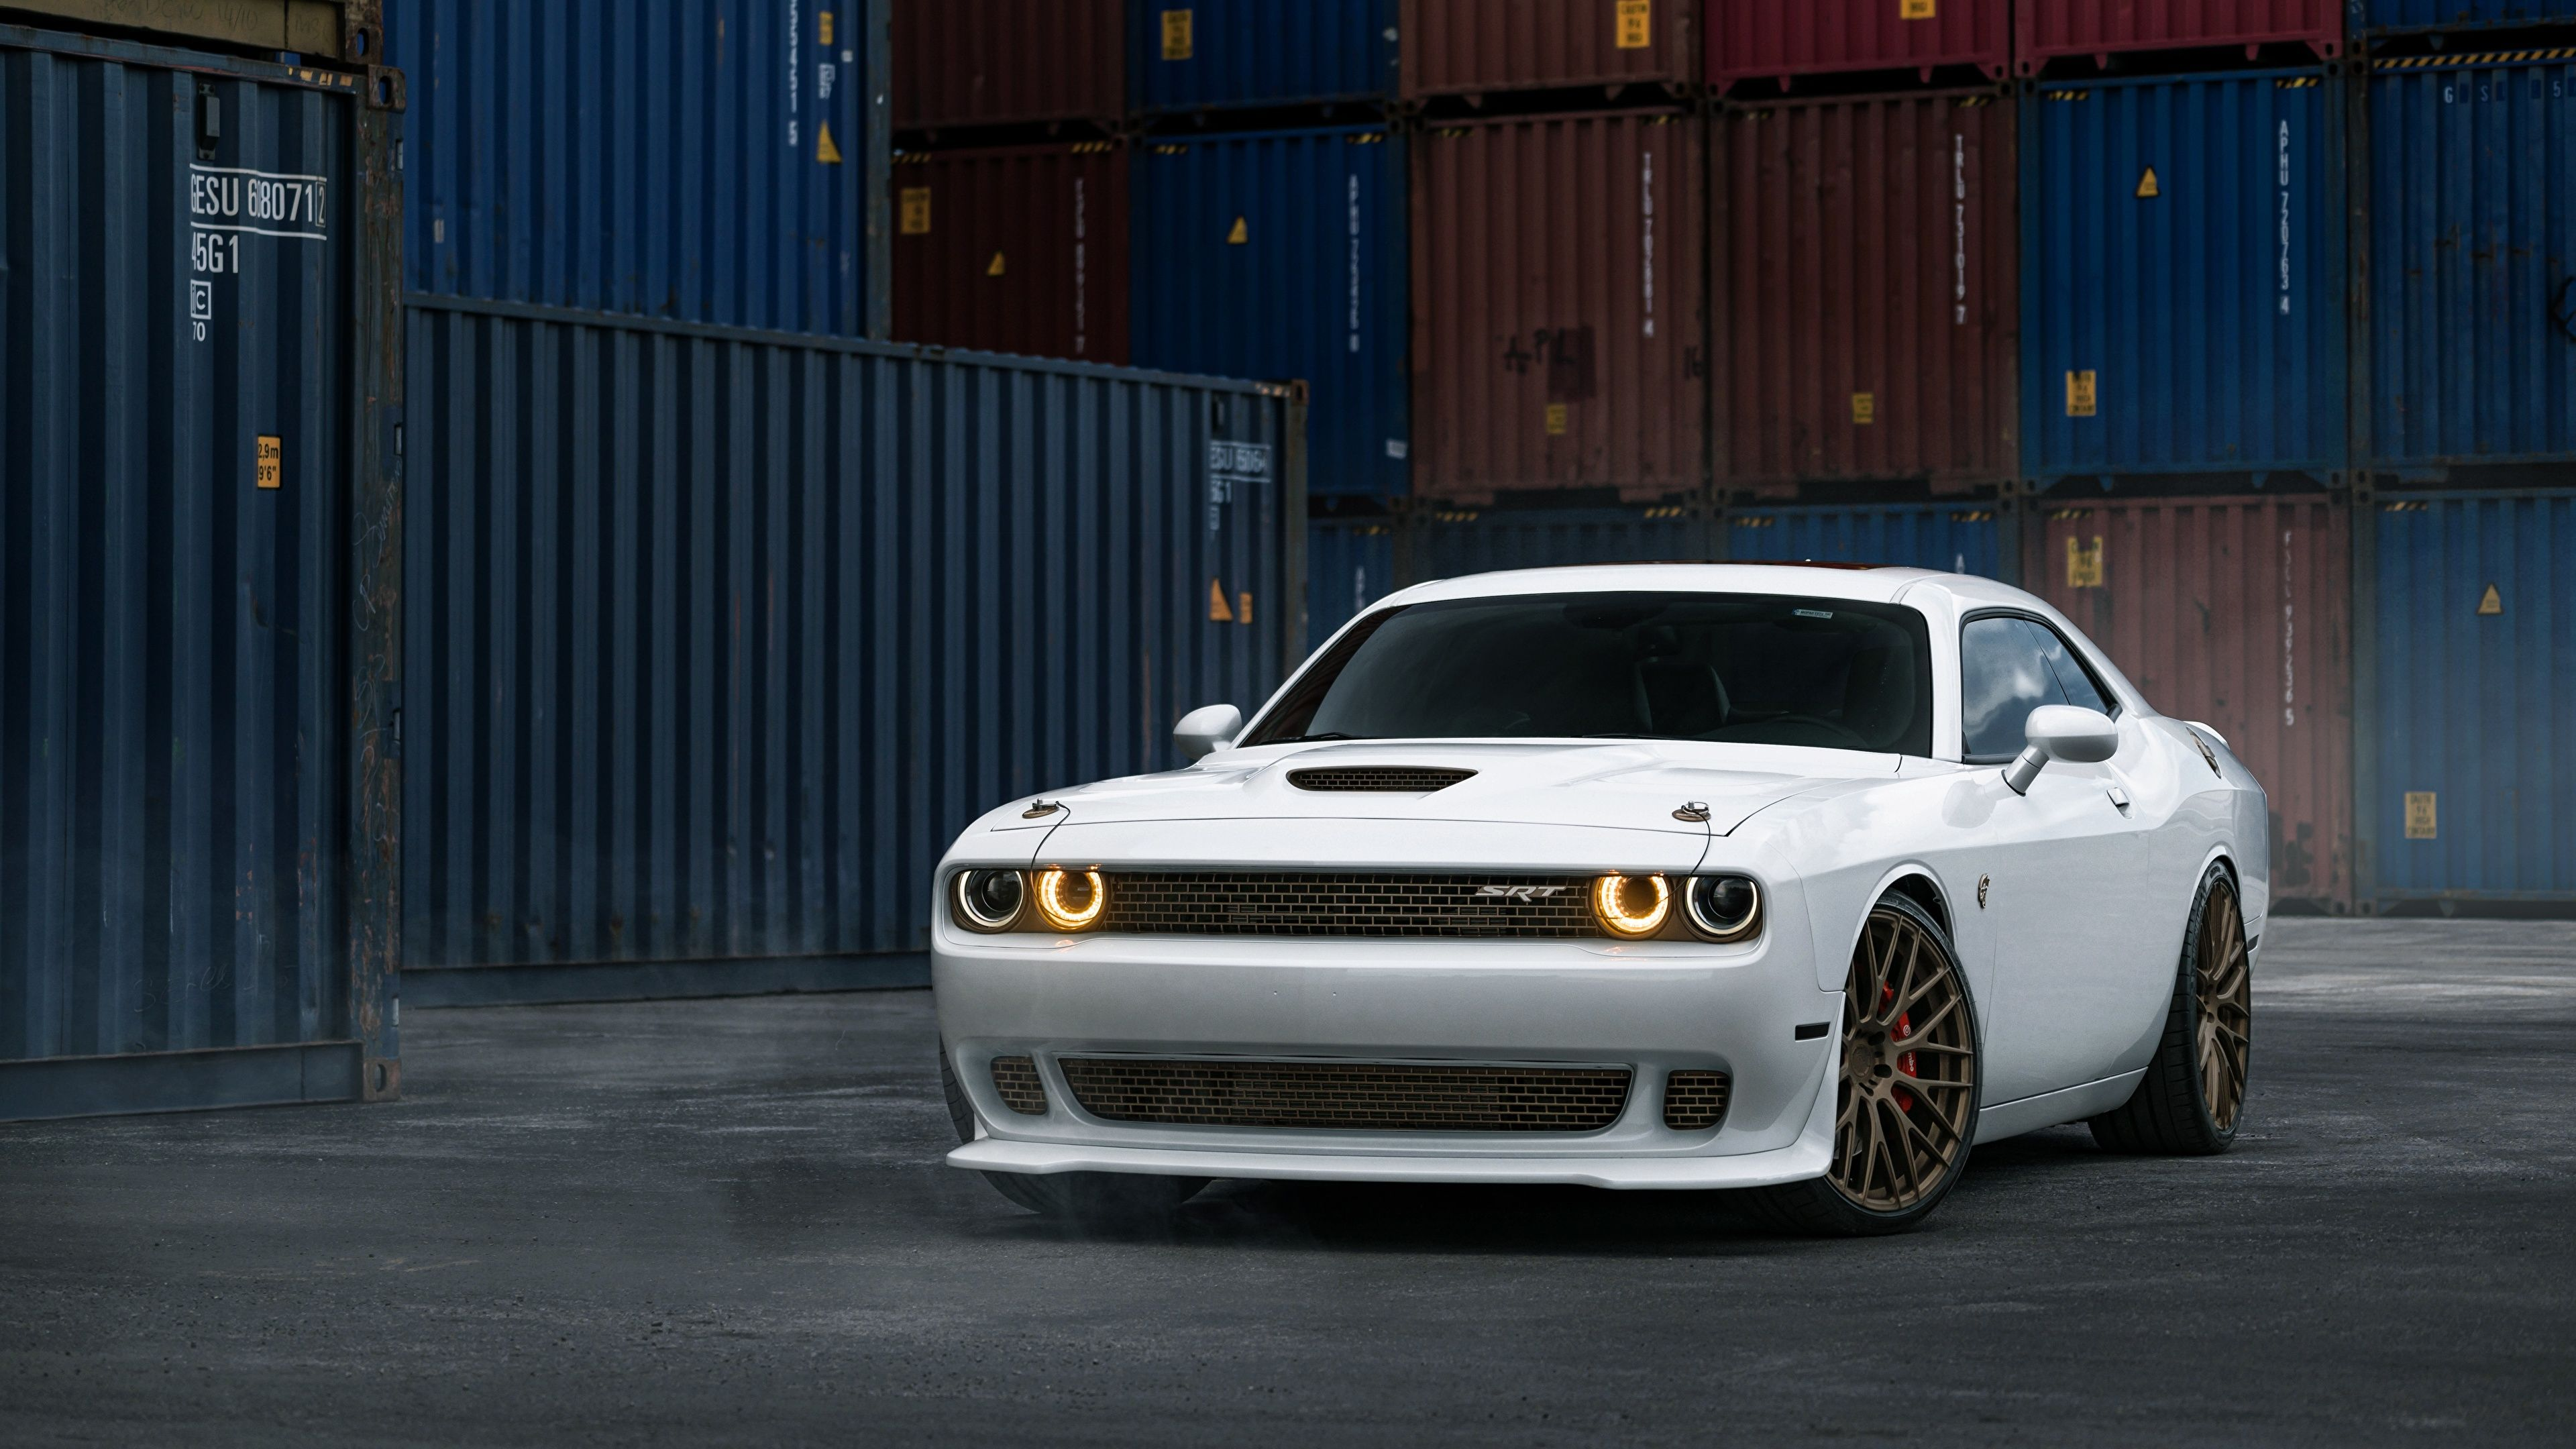 Picture dodge tuning william stern challenger white hellcat auto 3840x2160 cars automobile